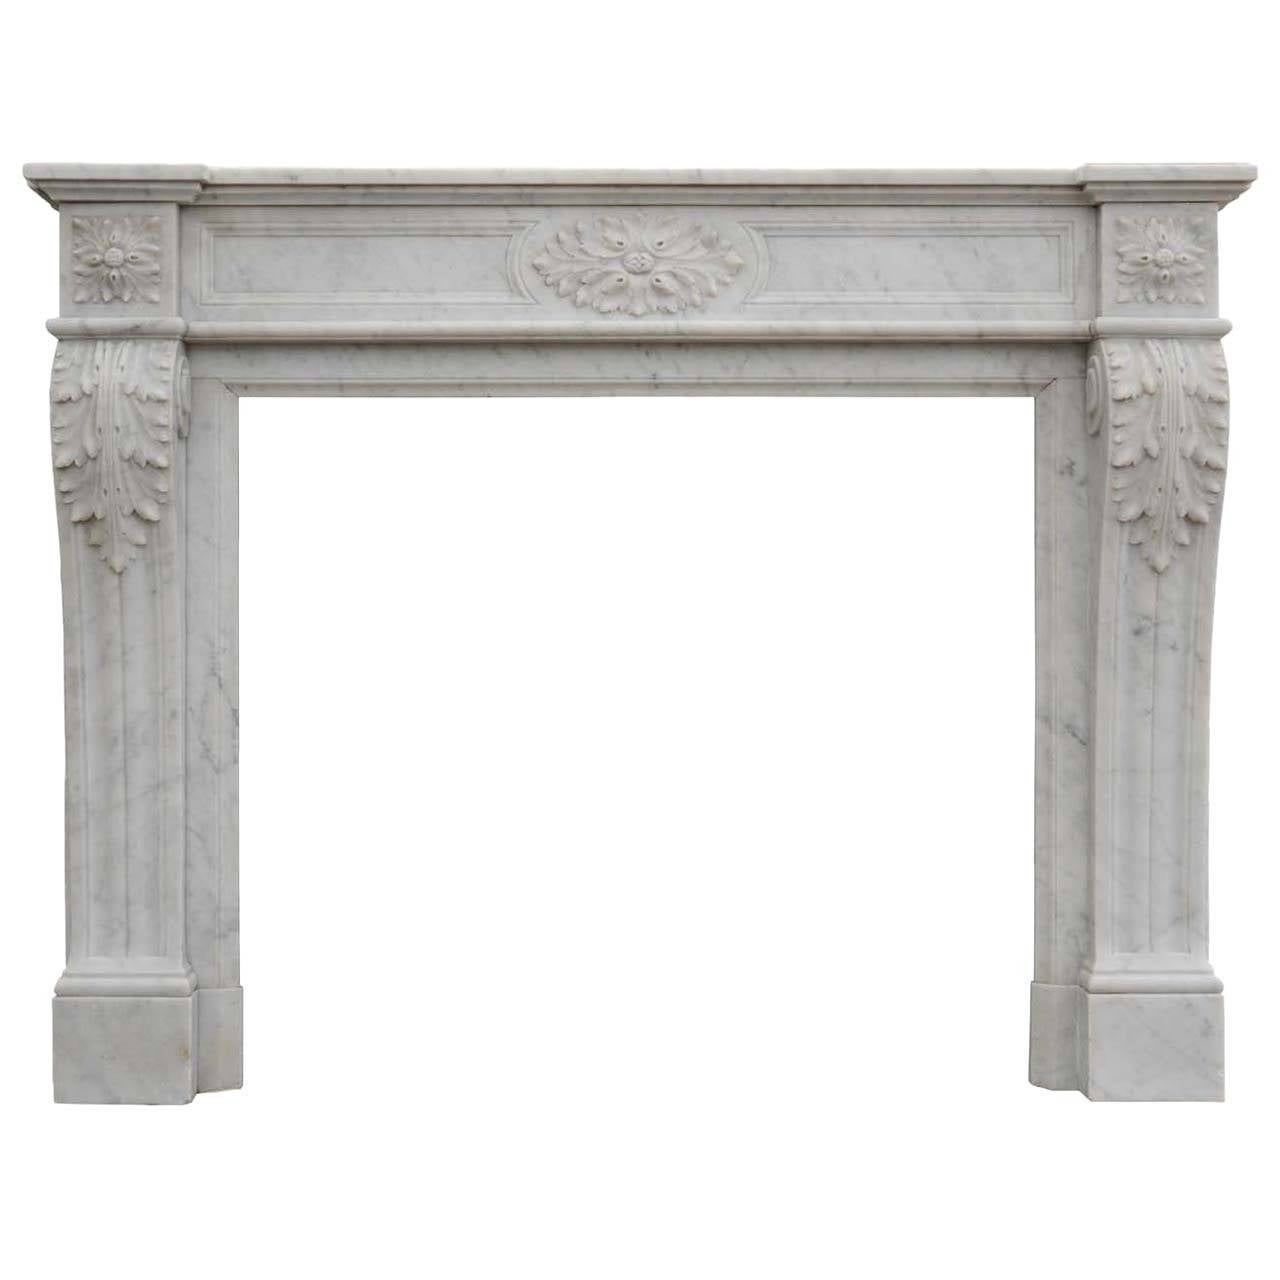 French Louis XVI Style White Marble Fireplace, 19th Century